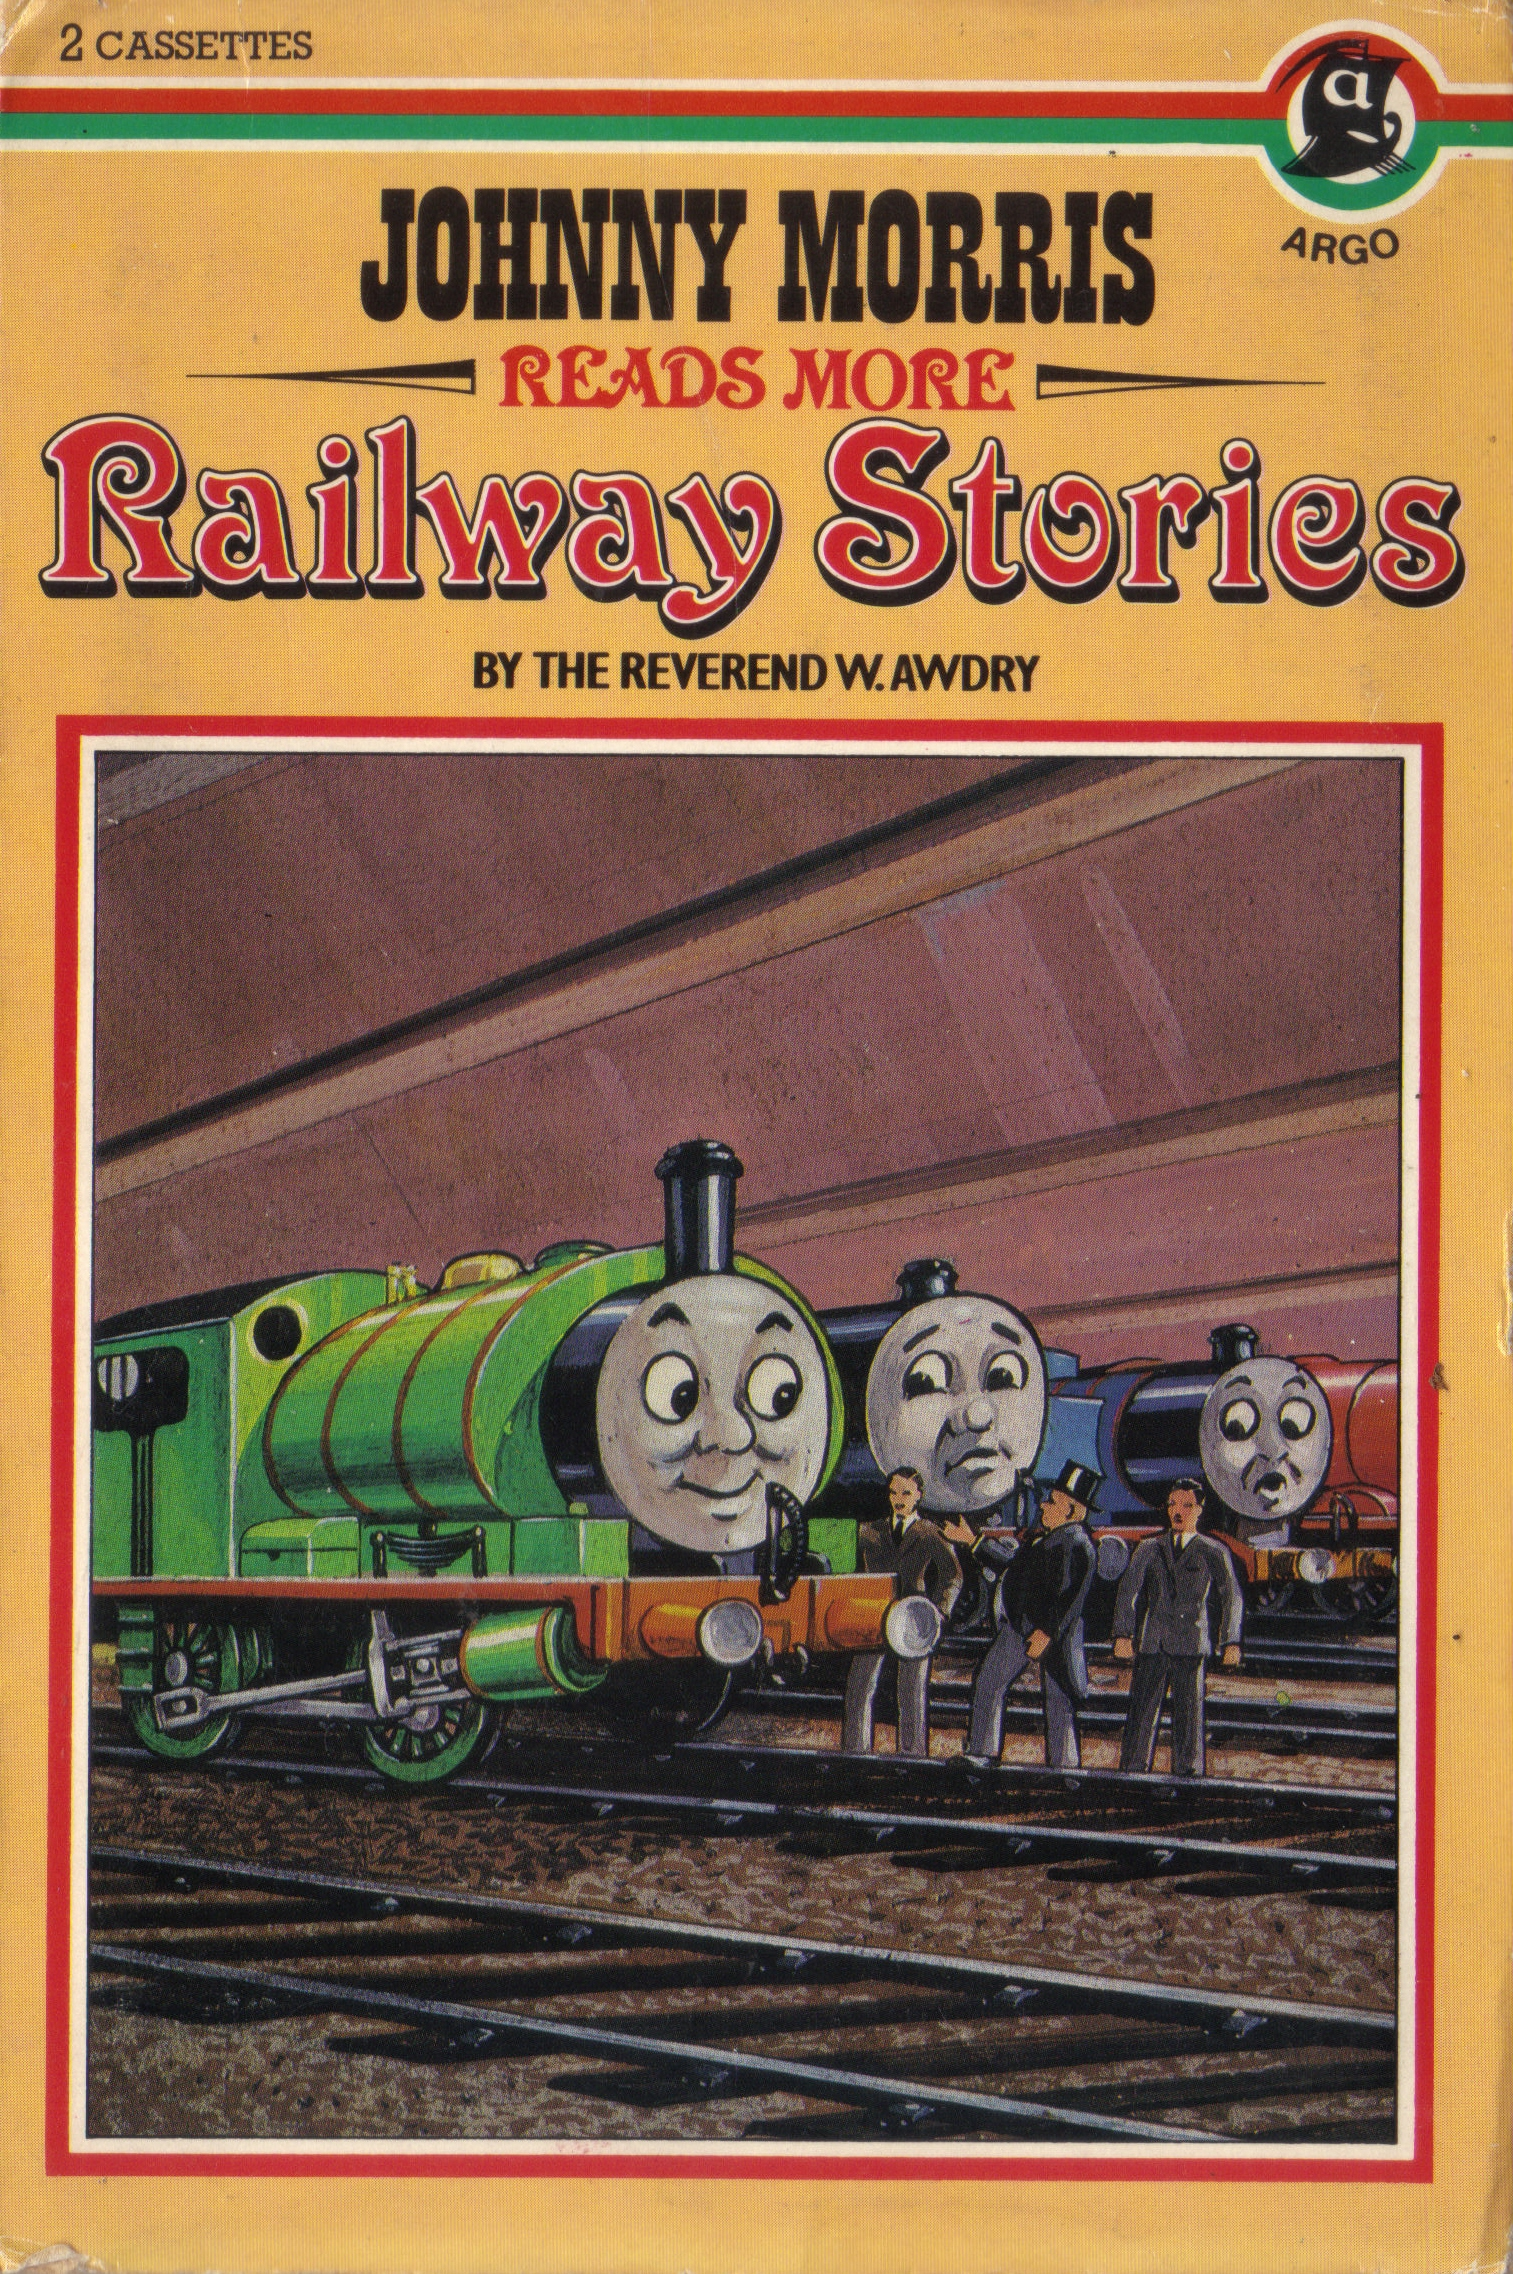 Johnny Morris Reads More Railway Stories